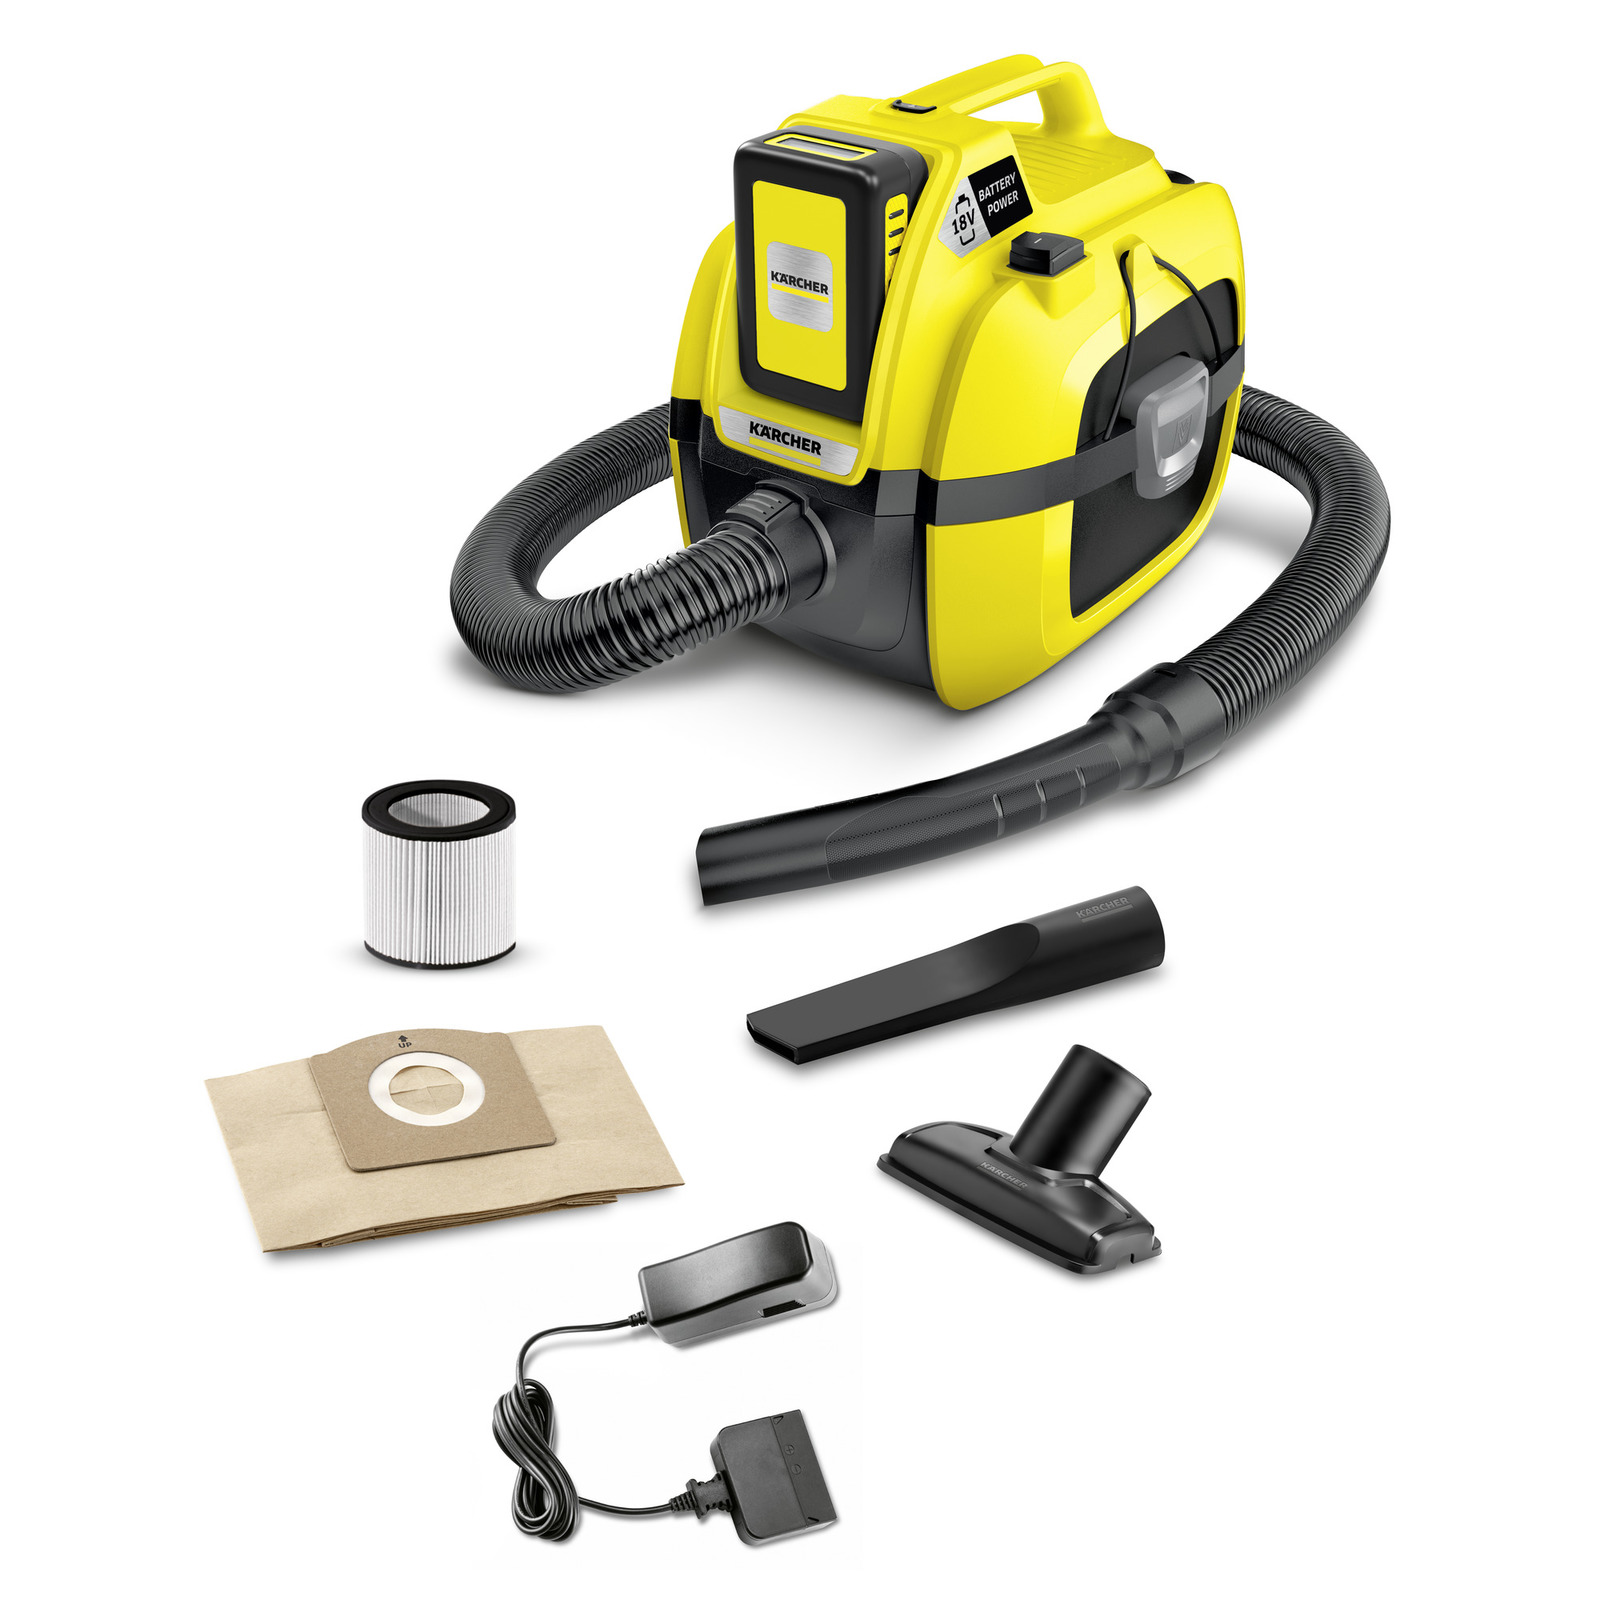 Kärcher - WD1 Compact Multi-Purpose Vacuum Cleaner Incl. 18V battery